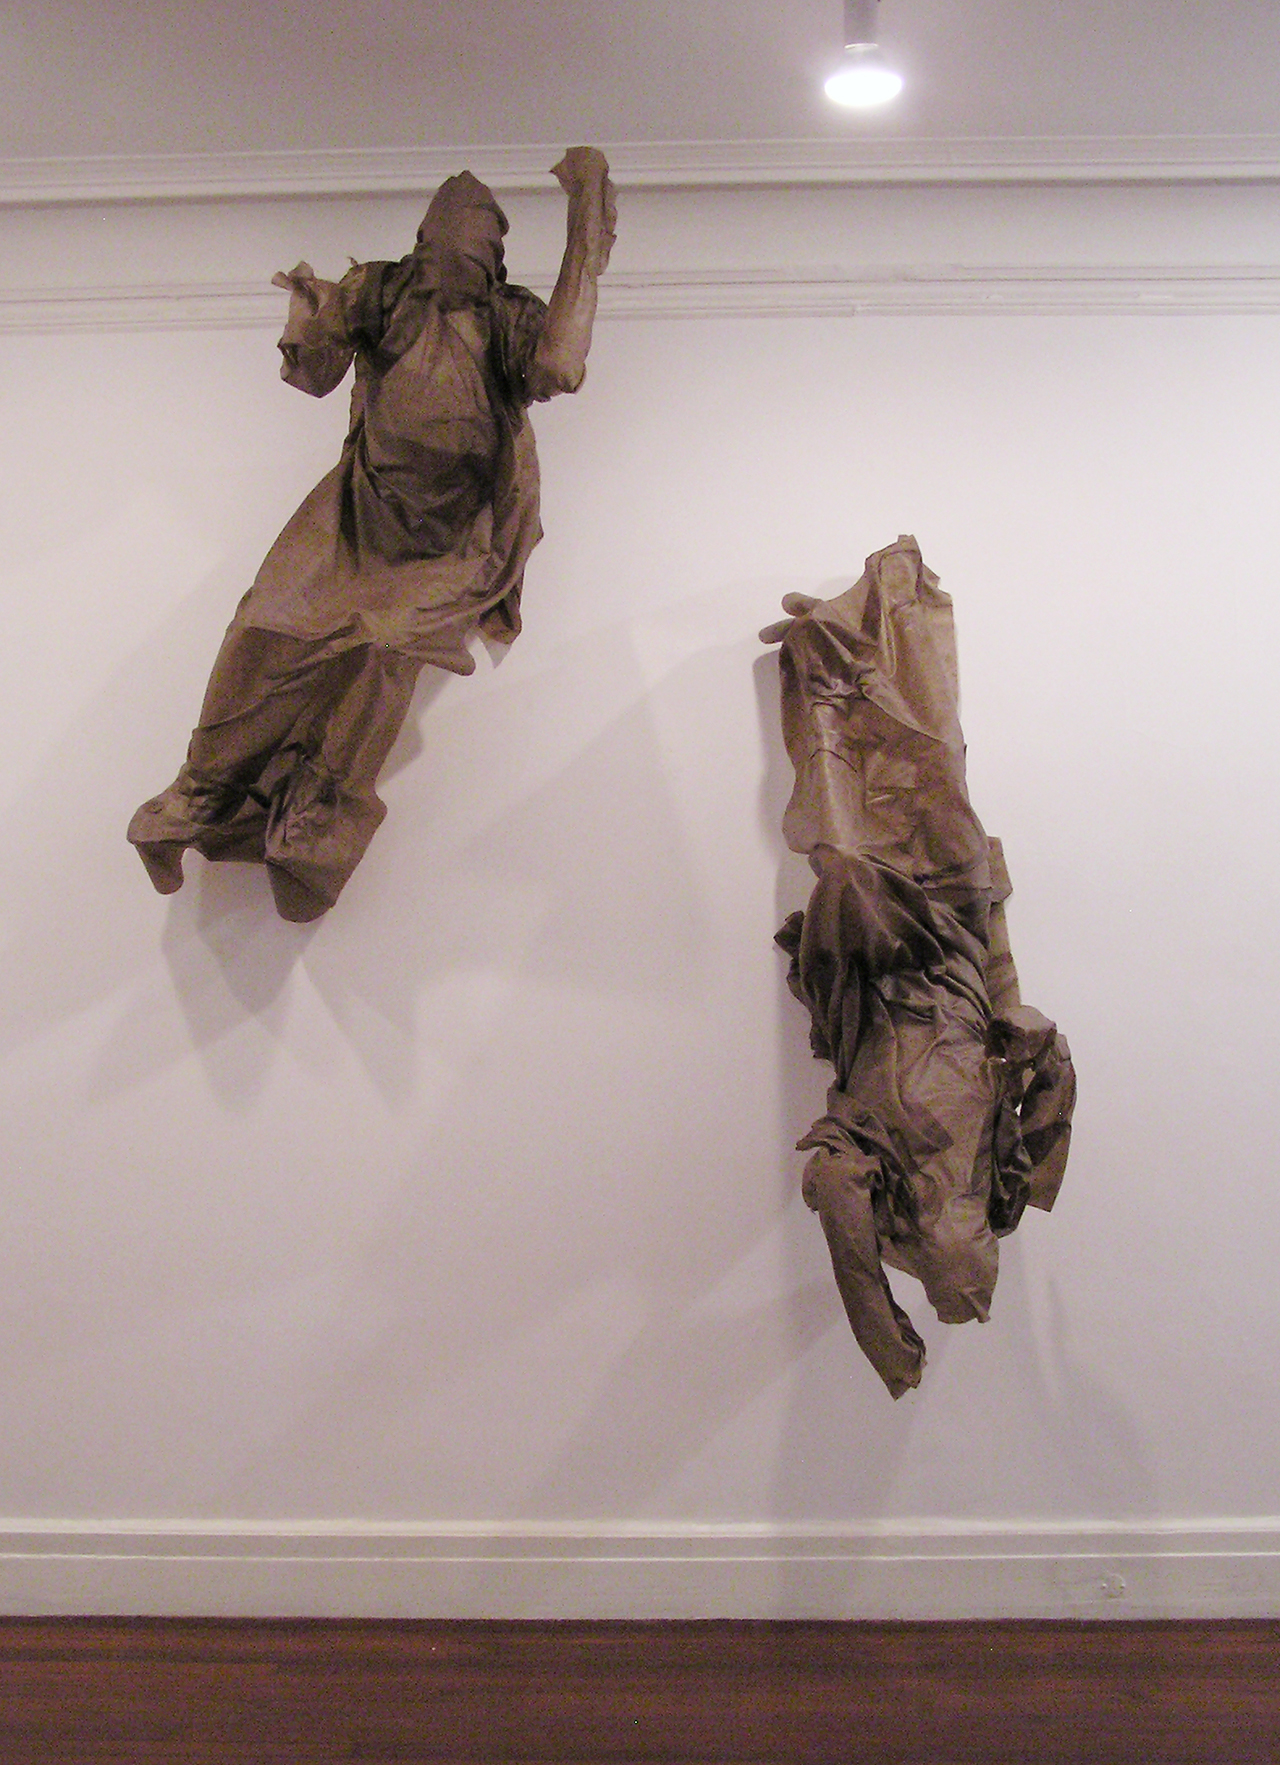 """Robert Morris, """"Jumpers"""" (2014–15), linen and resin, 138 x 84 x 37 inches (photo by the author for Hyperallergic) (click to enlarge)"""